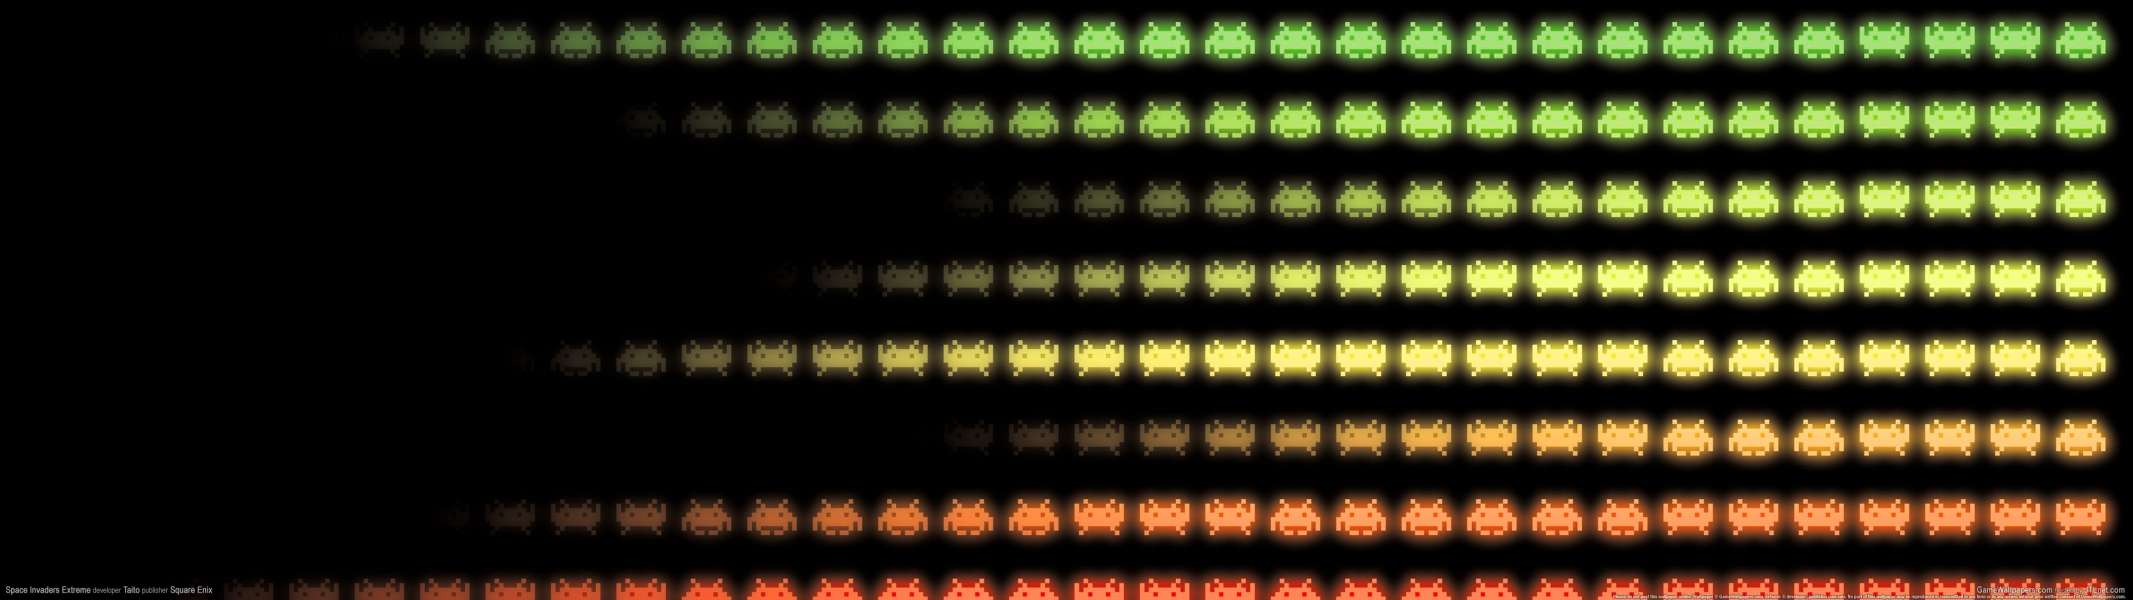 Space Invaders Extreme dual screen achtergrond